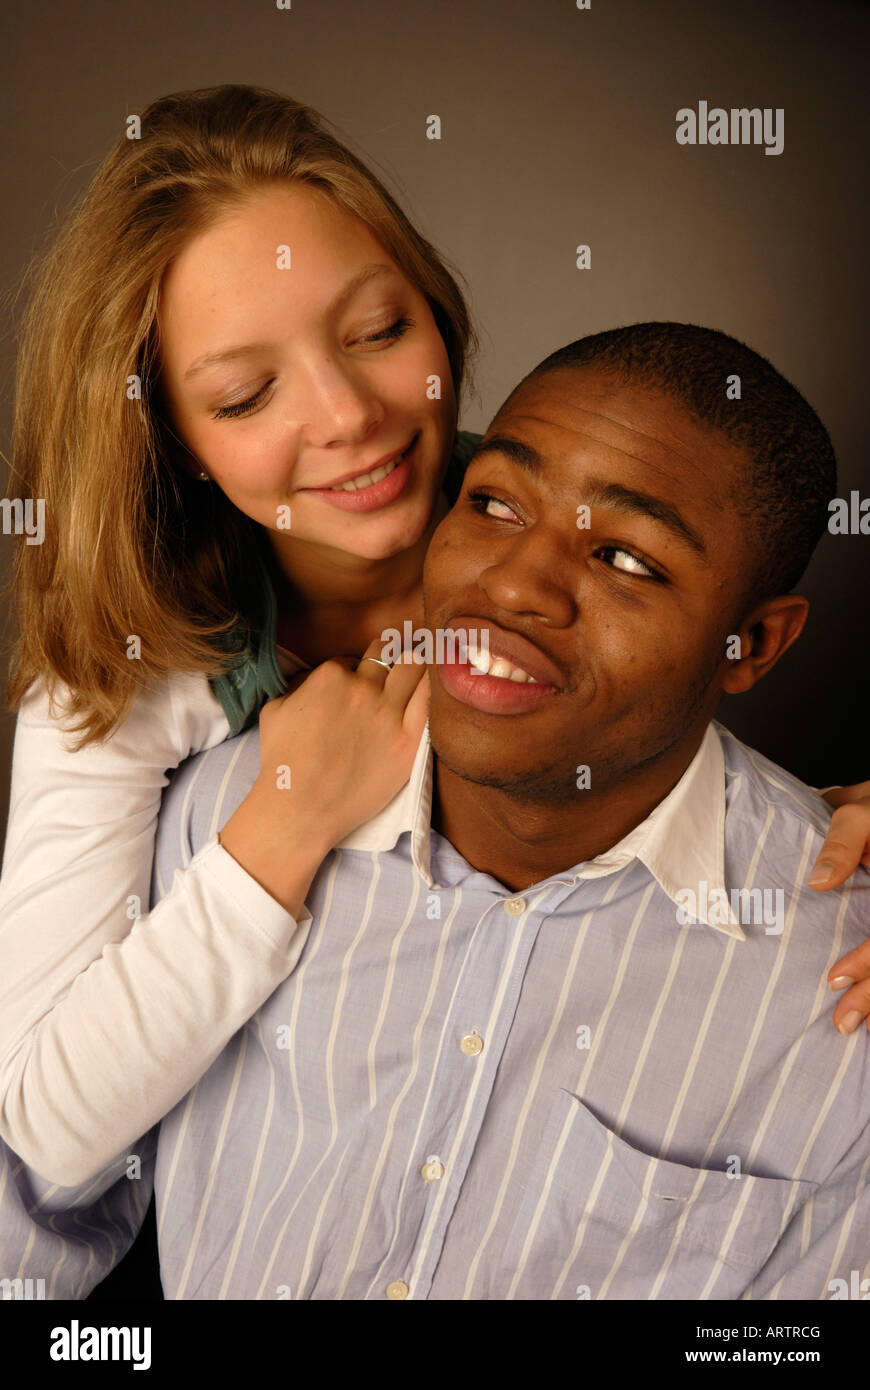 Happy young mixed rade couple. - Stock Image